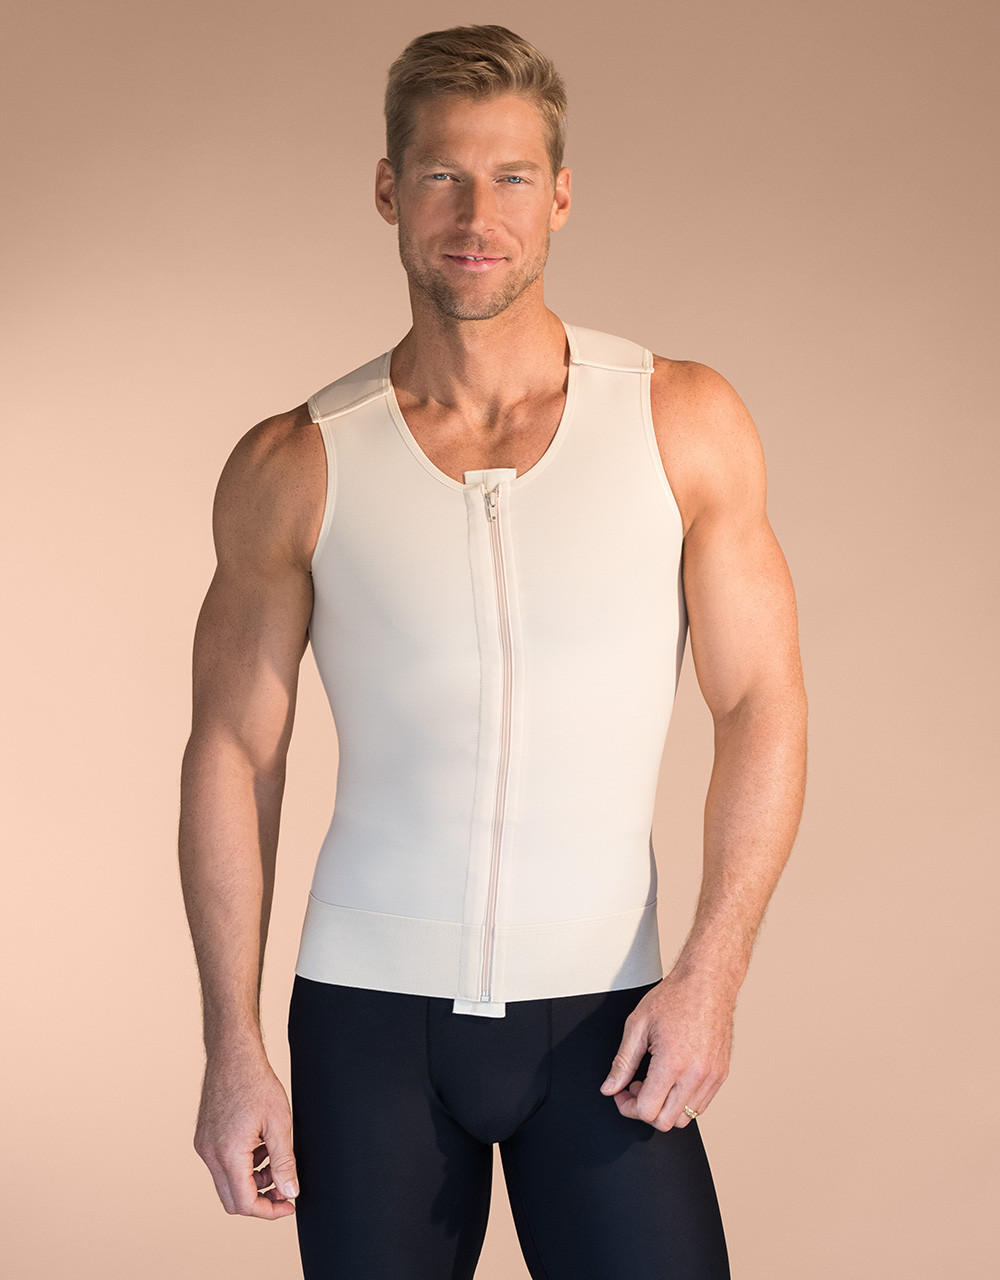 8e0588aba9 Marena Recovery MV sleeveless compression vest for men (bottoms sold  separately).